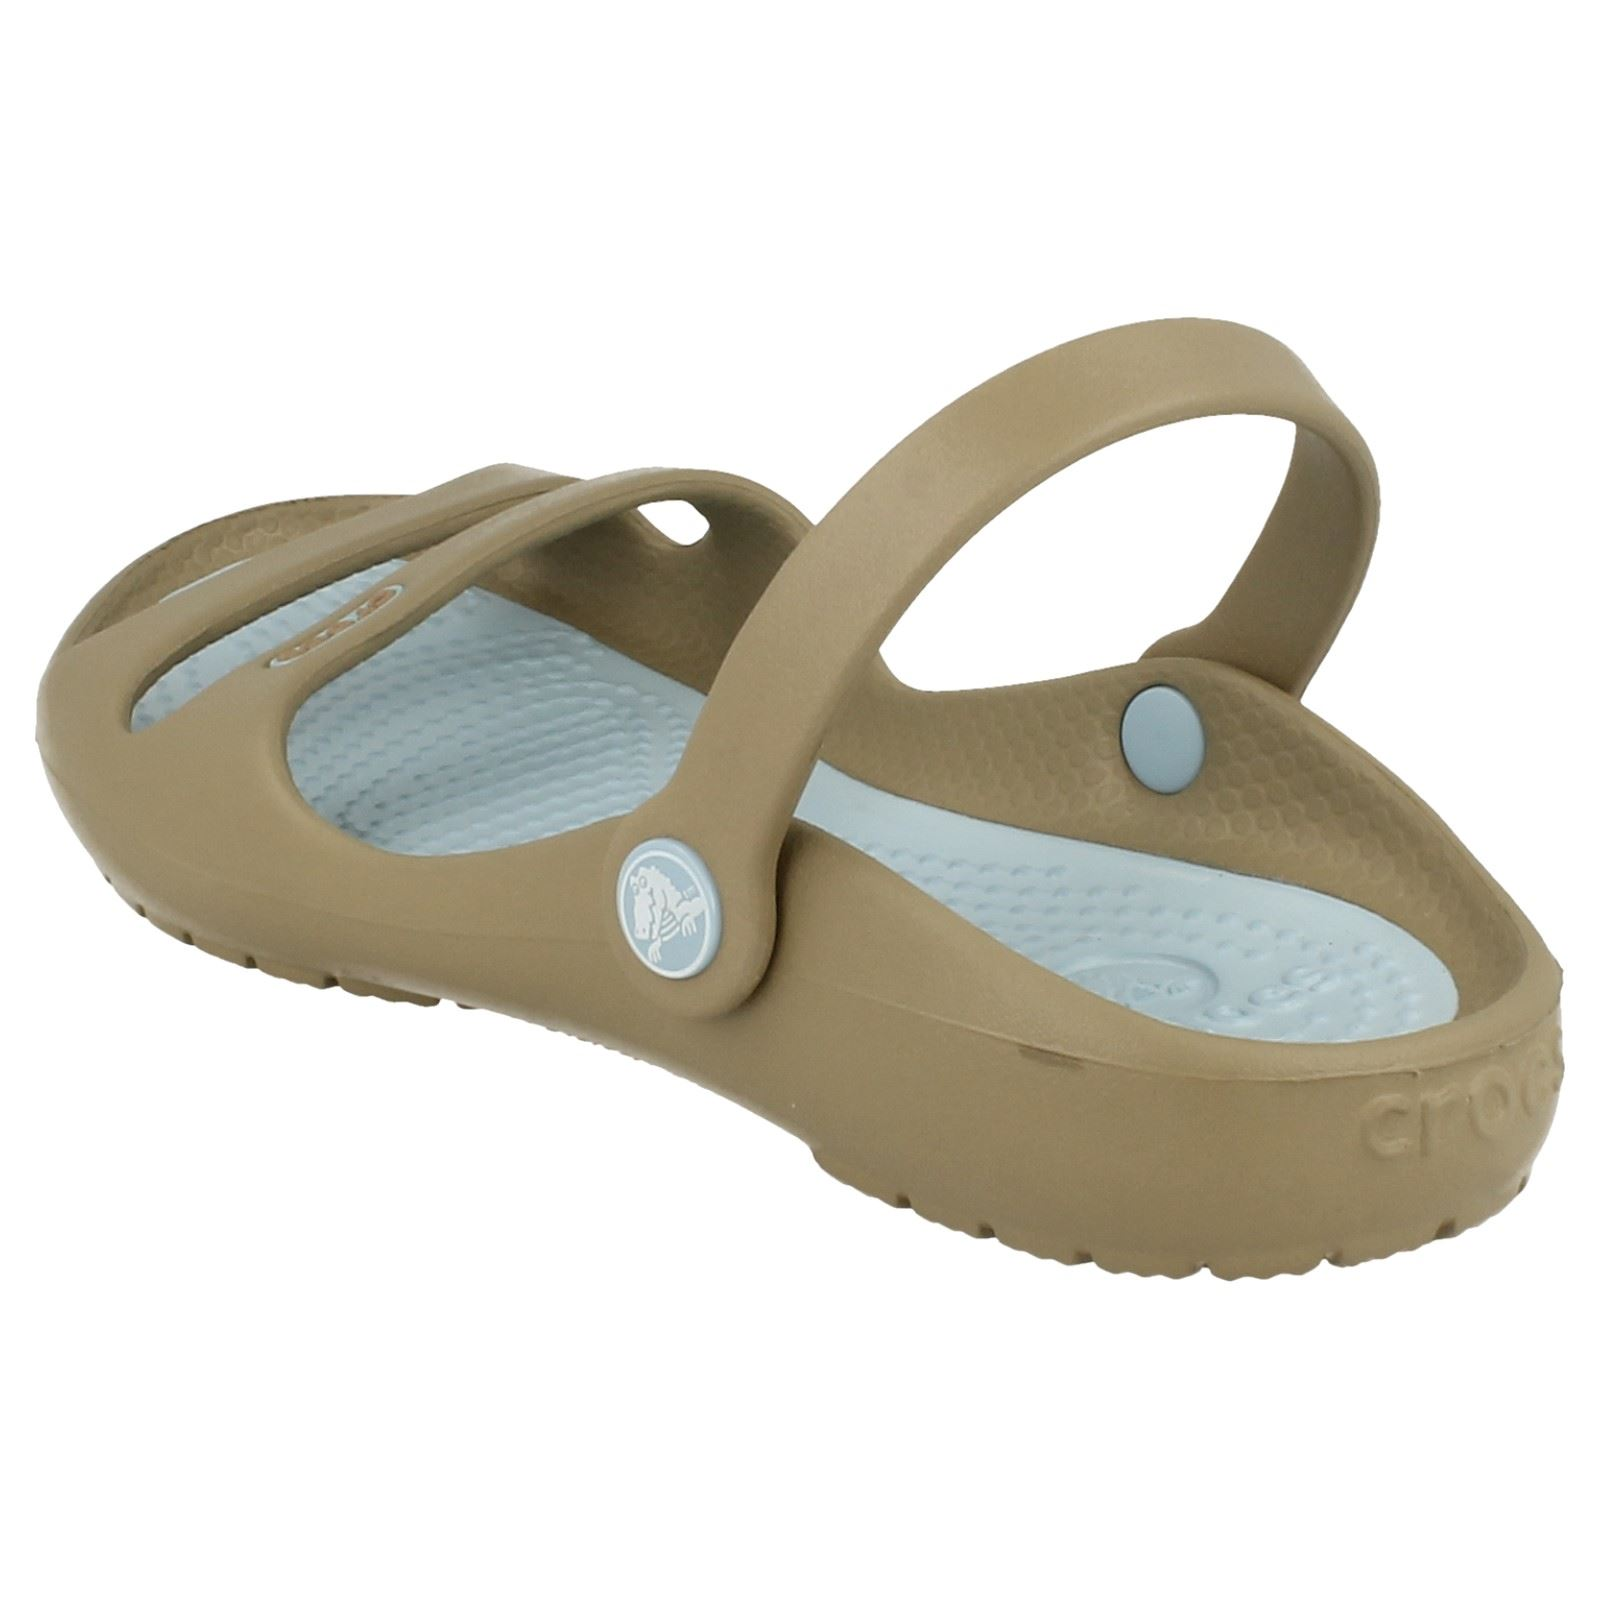 87ef74eb4903 Ladies-Crocs-Slip-On-Sandals-Cleo-II thumbnail 6